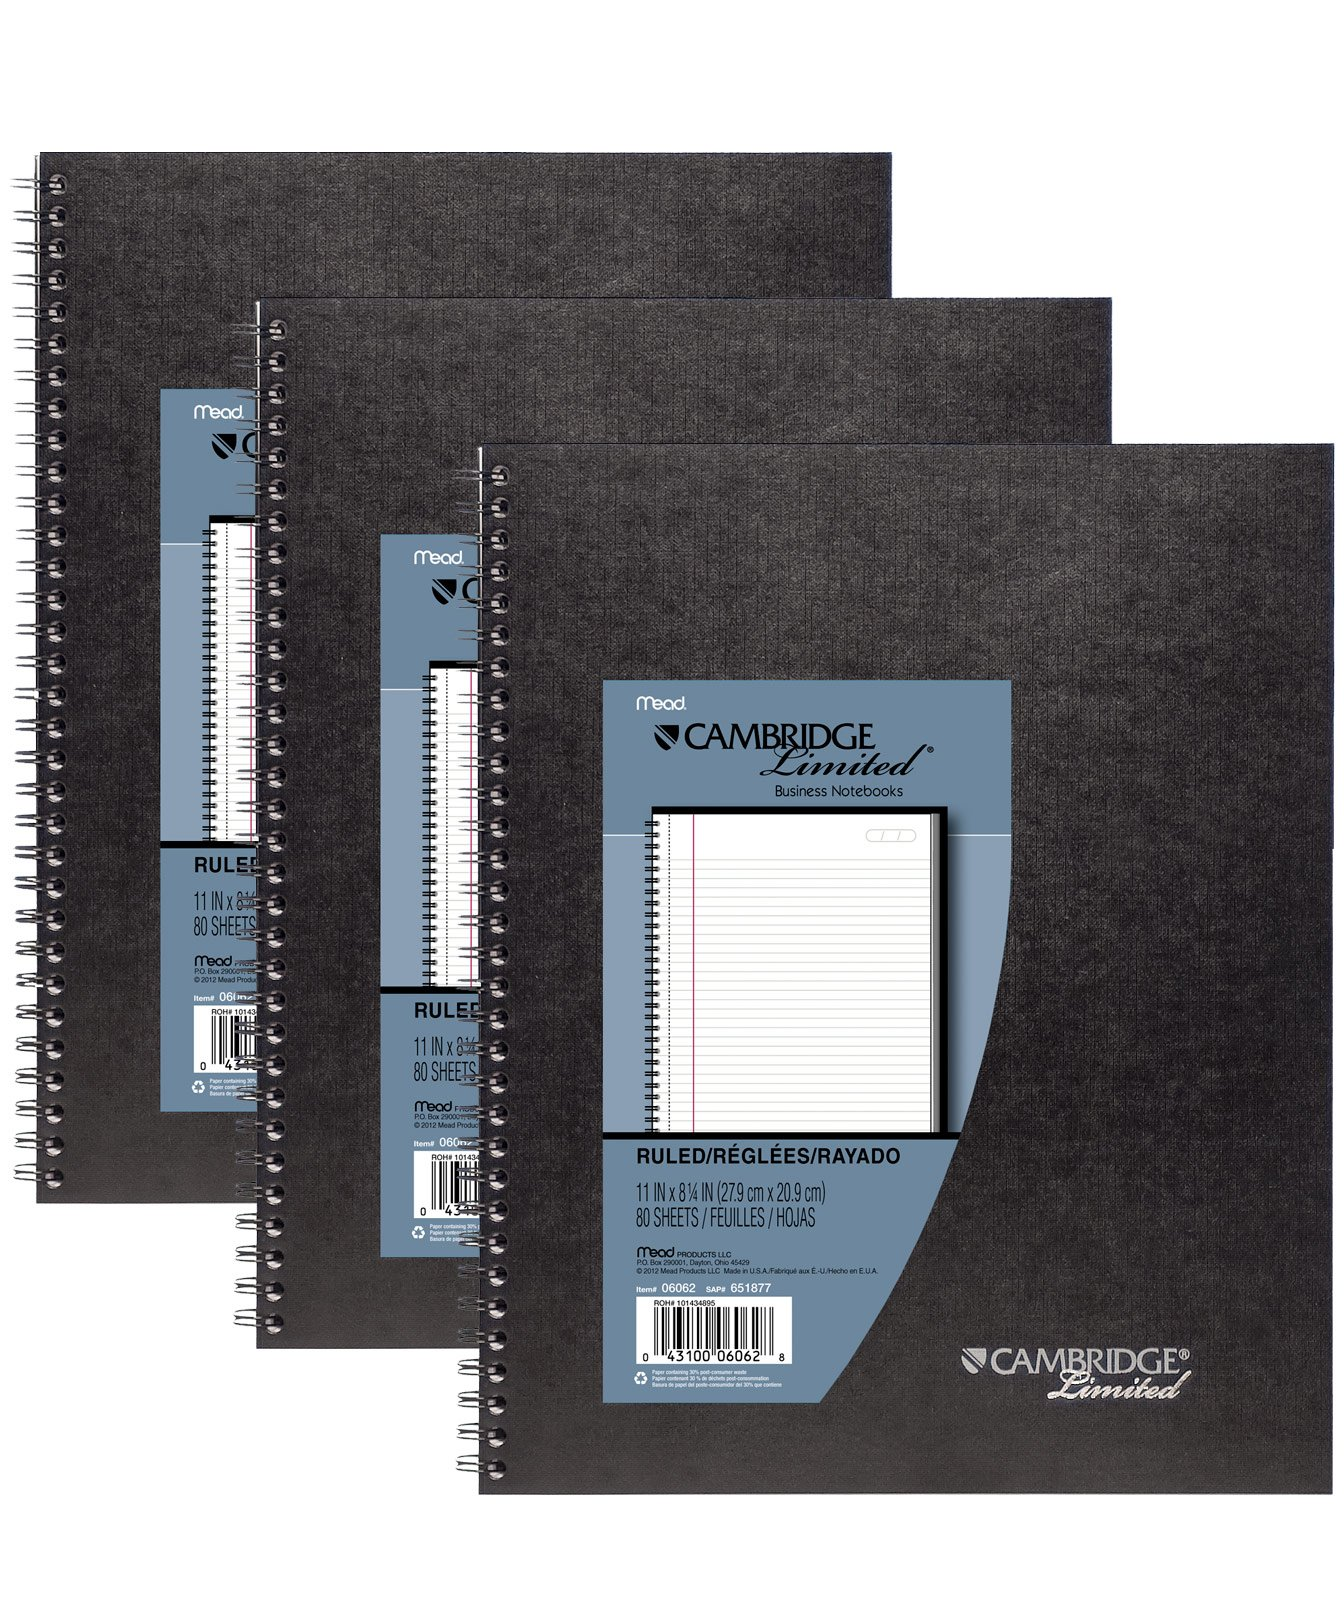 Mead Cambridge Limited Business Notebooks, Legal Ruled, 1 Subject, 3-Pack (73397) by Mead